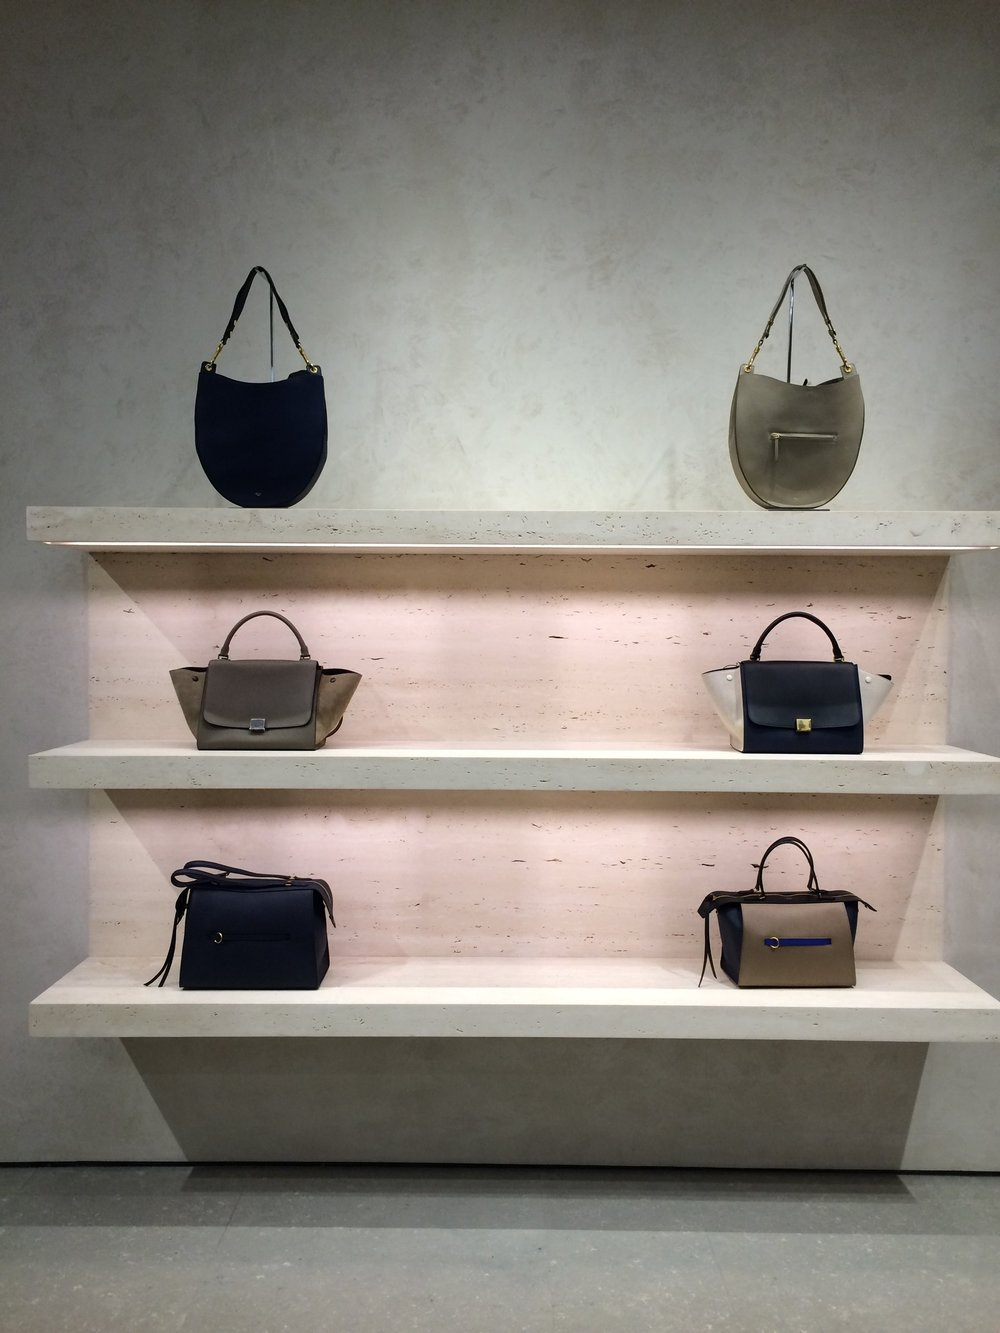 We nipped into Celine to warm up amongst beautiful things......